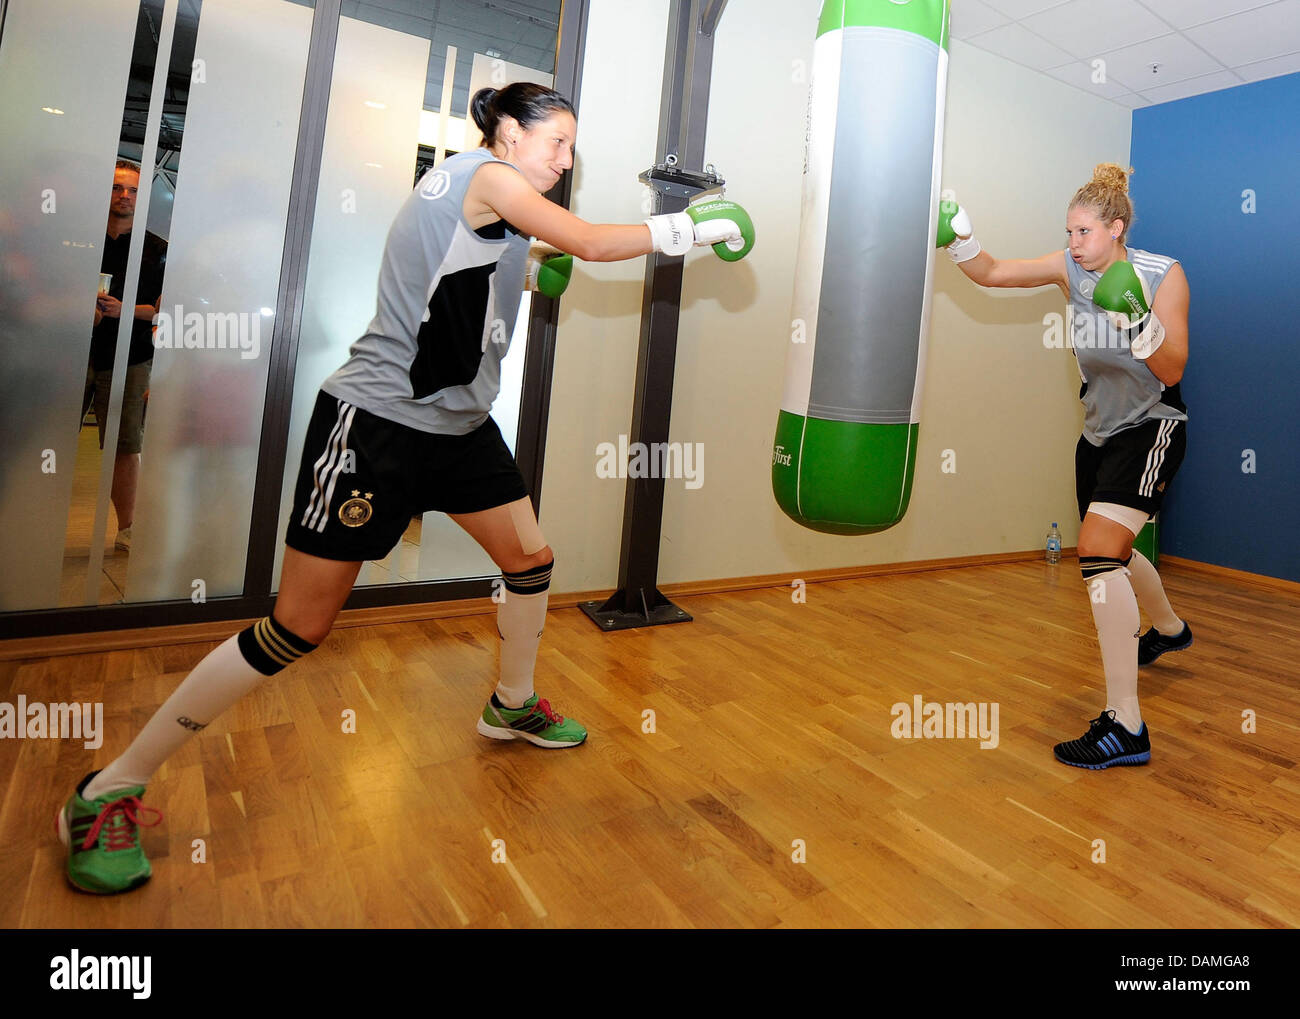 Verena Faisst (L) and Kim Kulig (R) of the German national soccer team punch a bag during a training session at - Stock Image